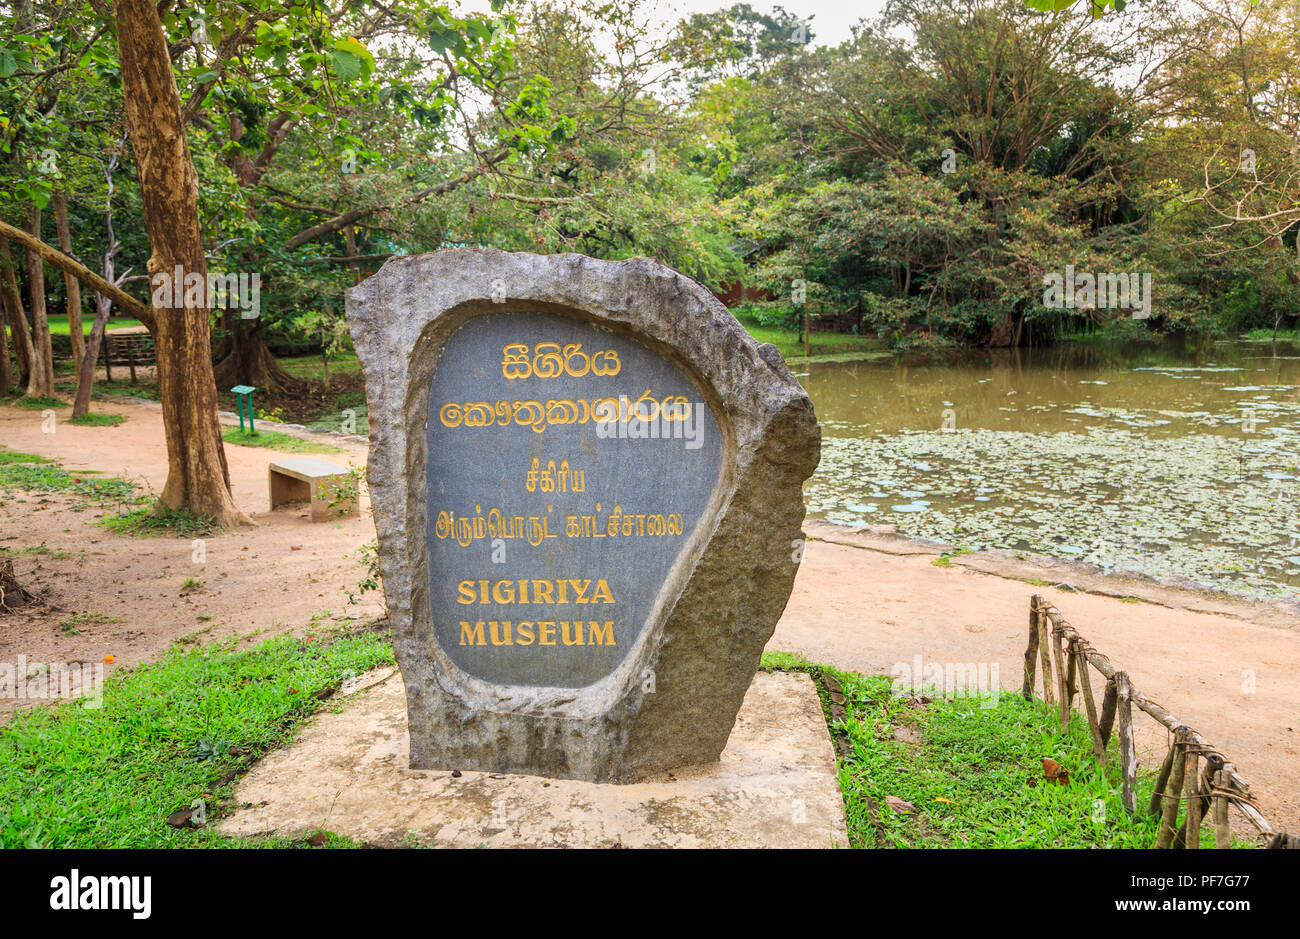 Sigiriya Museum carved entrance sign at Sigiriya or Lion Rock in the Cultural Triangle of Sri Lanka, a leading historic monument tourist attraction - Stock Image